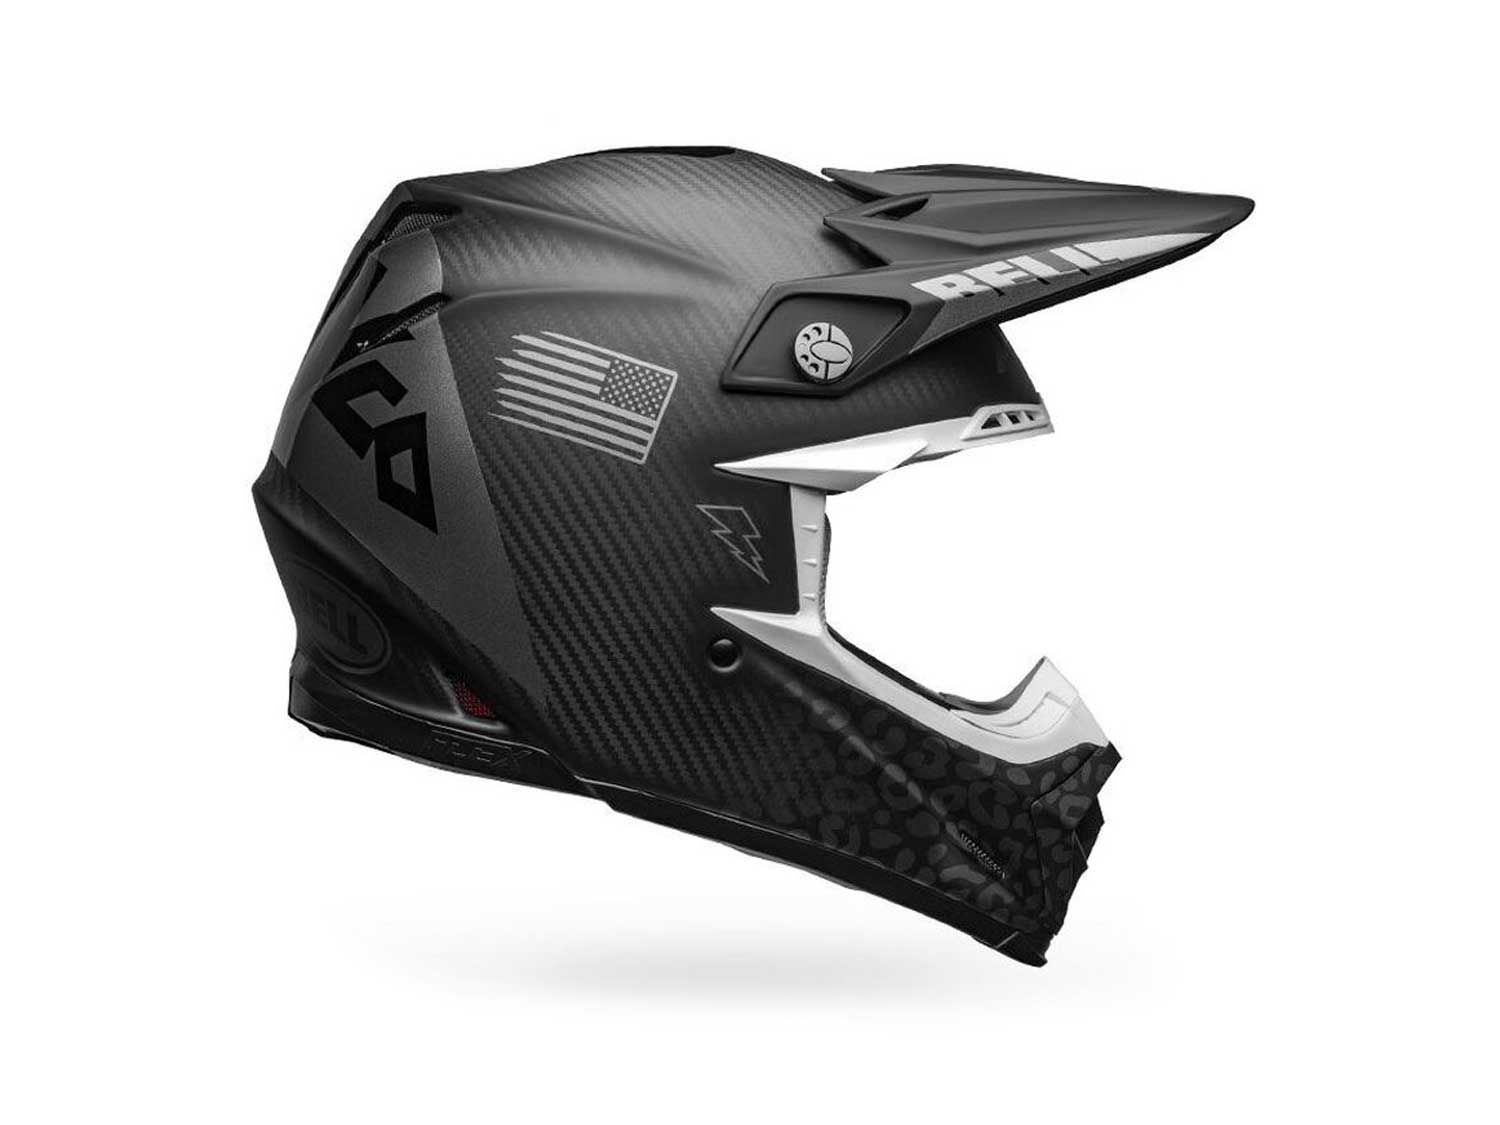 In addition to supporting race teams such as Monster Energy/Star Racing/Yamaha, Bell Helmets also sponsors riders such as Axell Hodges, whose signature Slayco helmet in matte/gloss black/gray (pictured) is currently the highest-priced Moto-9 Flex at $729.95.